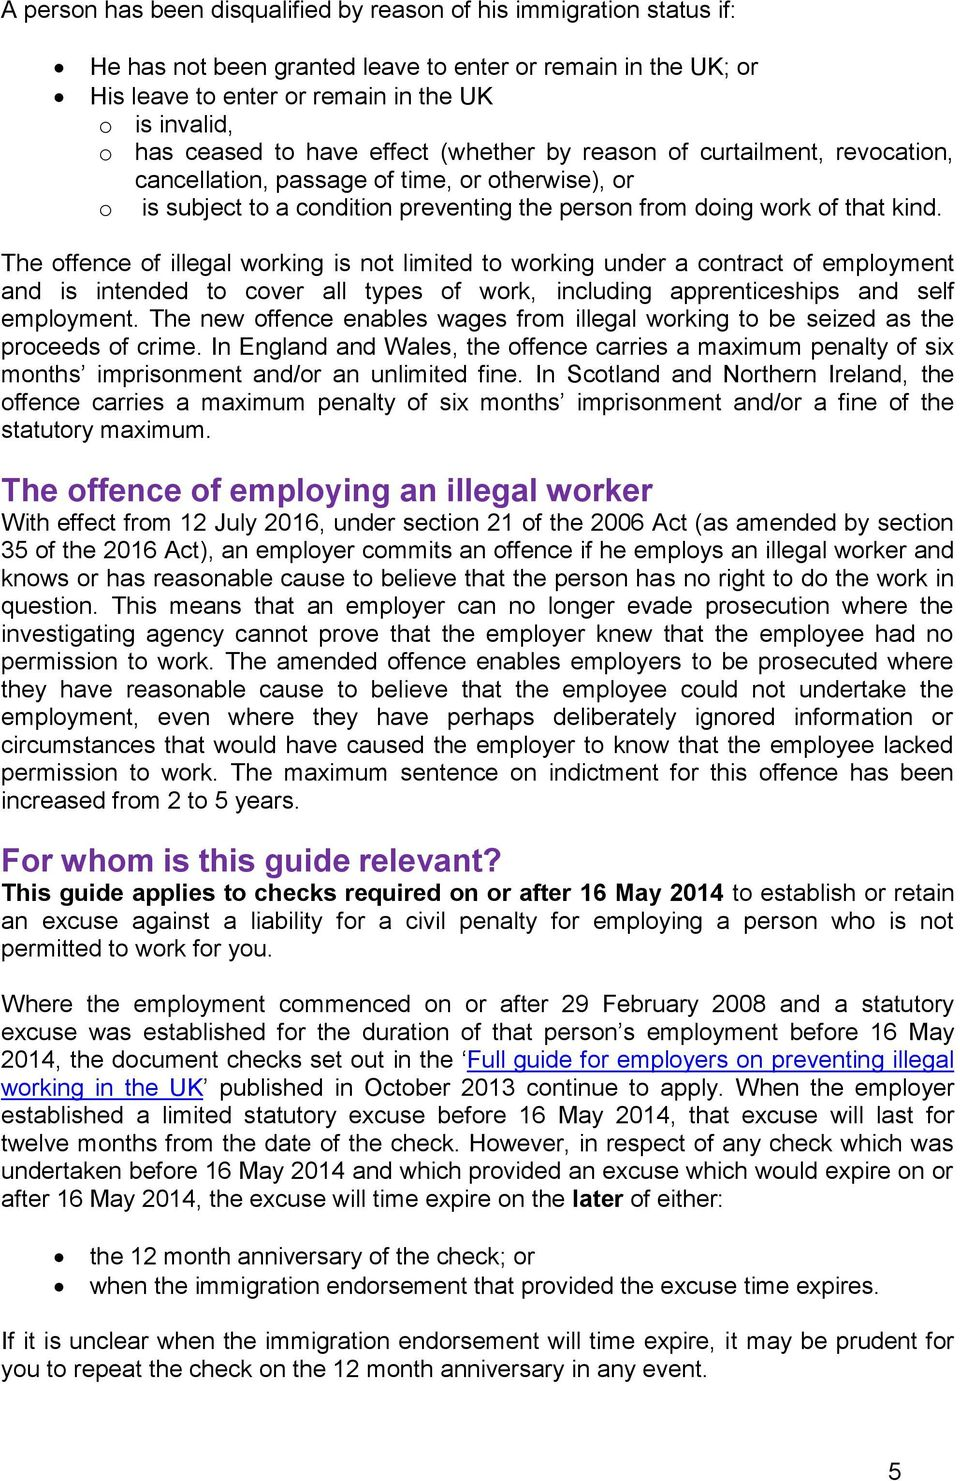 The offence of illegal working is not limited to working under a contract of employment and is intended to cover all types of work, including apprenticeships and self employment.